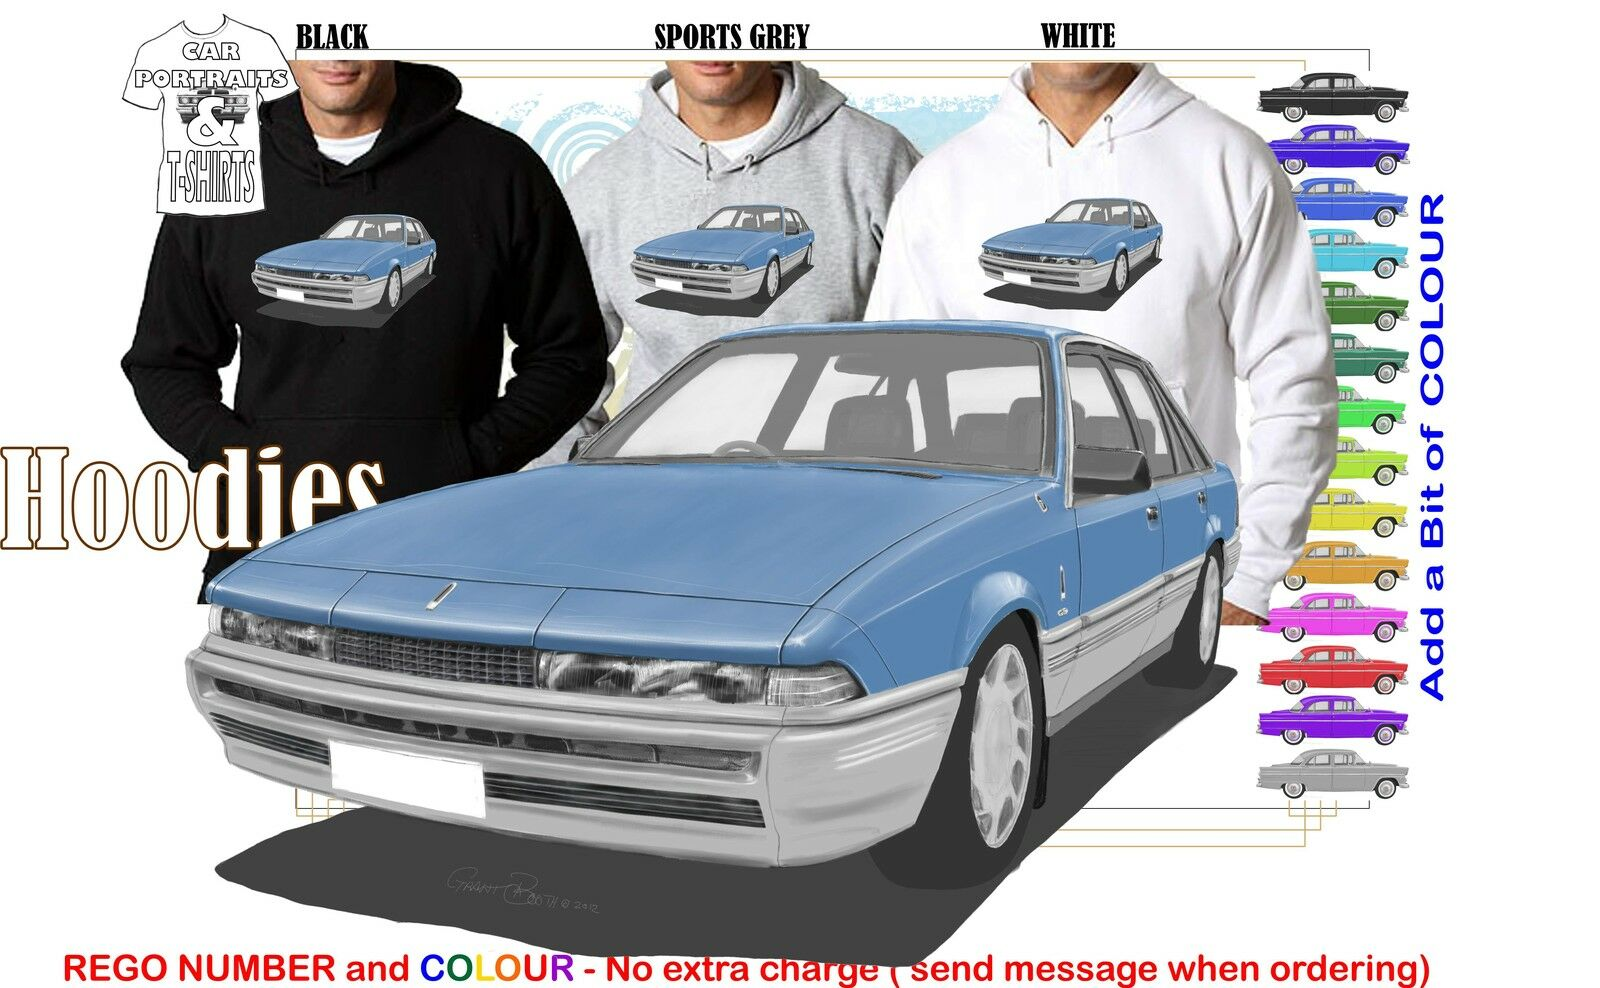 86-88 VL CALAIS COMMODORE HOODIE ILLUSTRATED CLASSIC RETRO MUSCLE SPORTS CAR